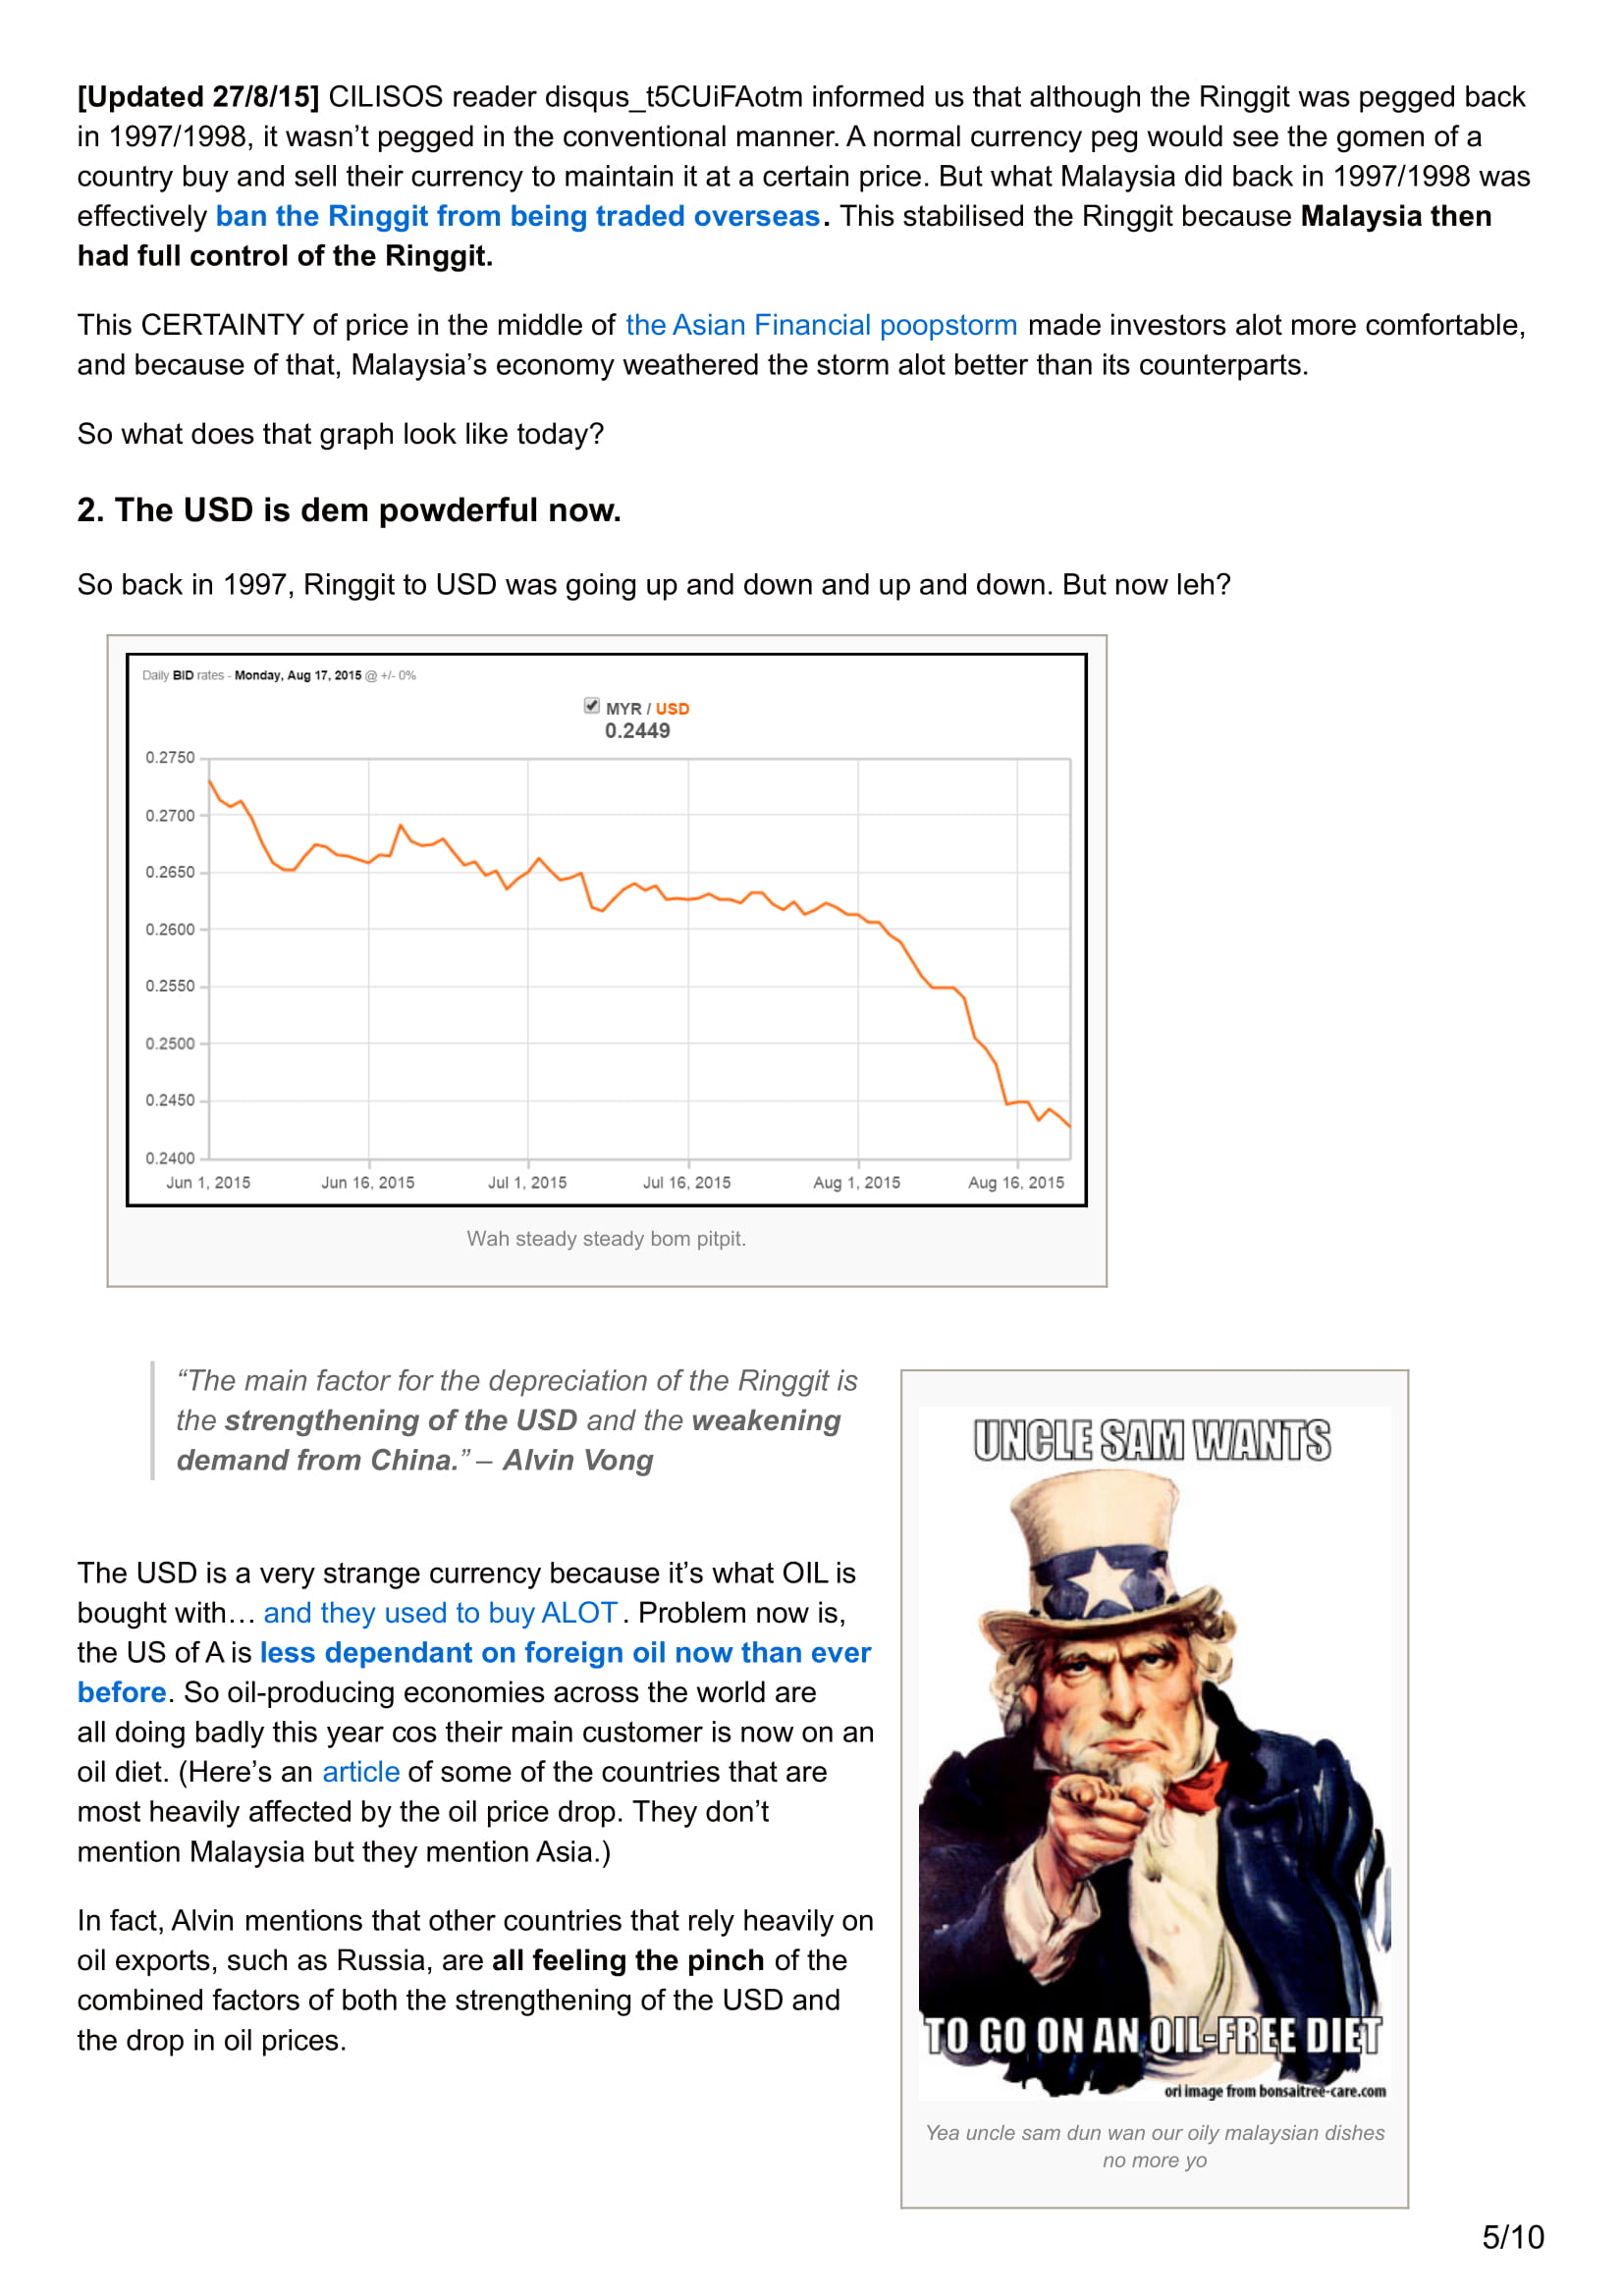 Media Coverage cilisos.my 4 reasons why pegging the Ringgit might not work like 1997 Update 9.pdf 23RD AUG 2015 05